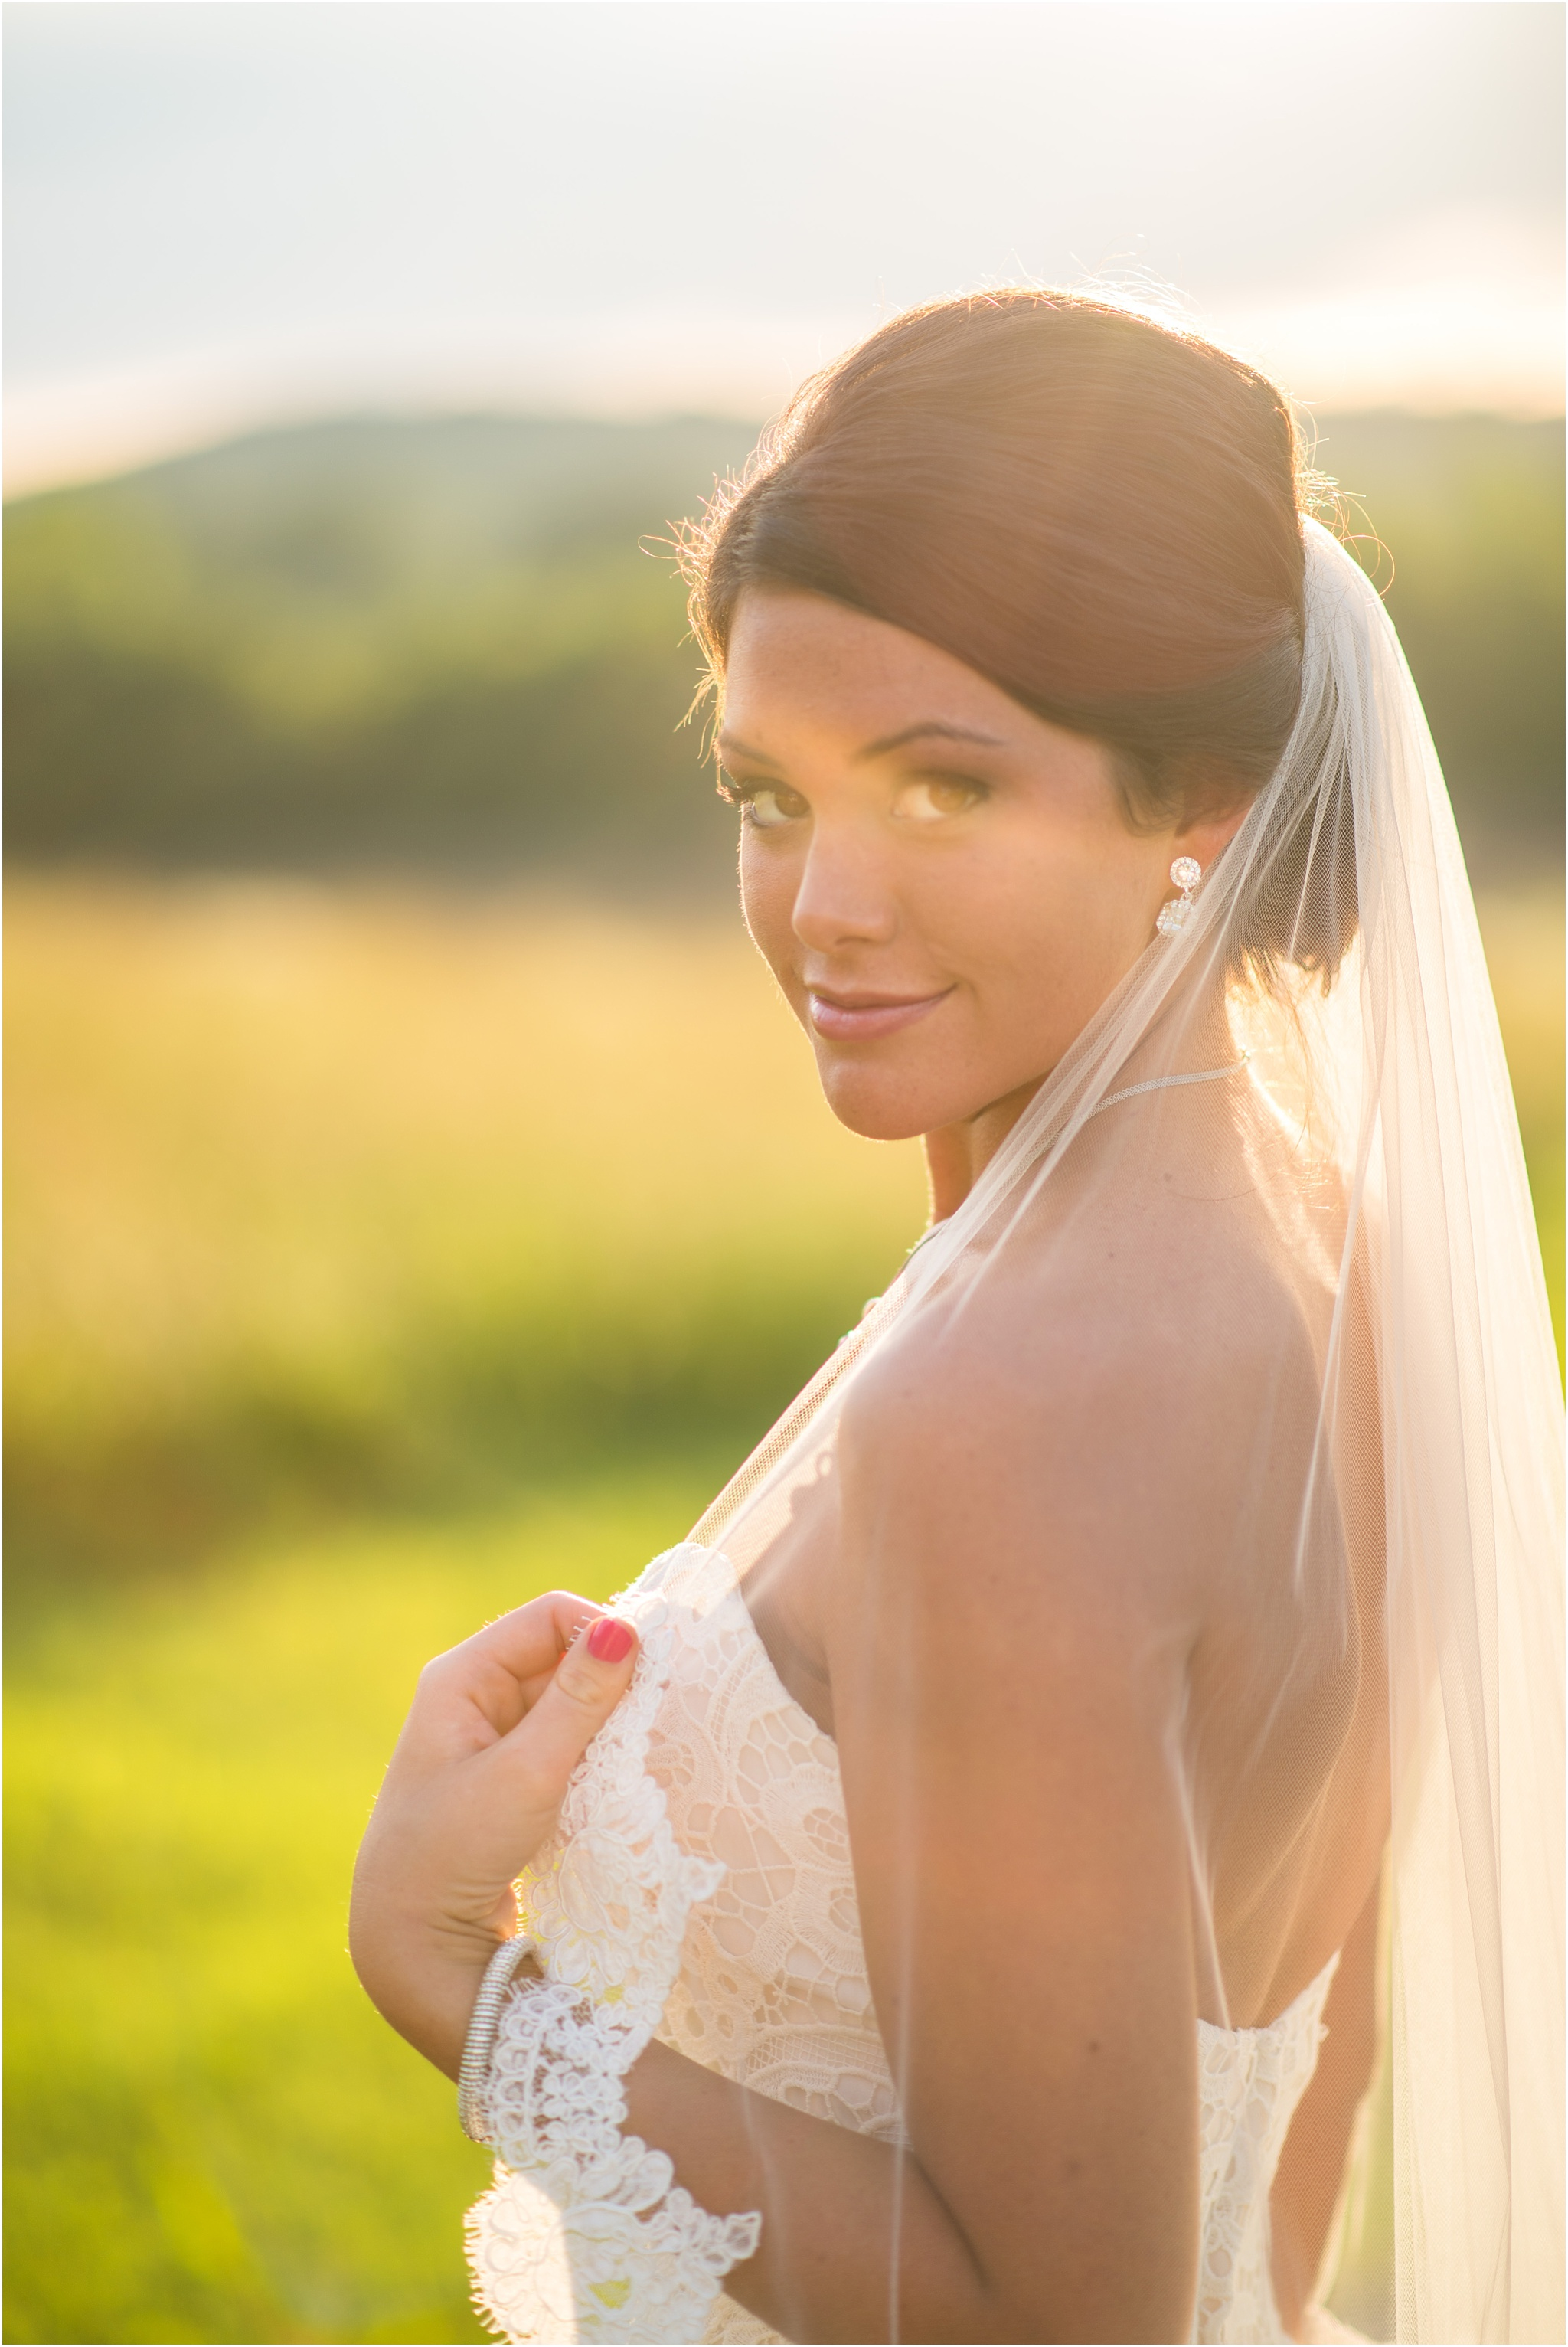 Greg Smit Photography Nashville wedding bridal photographer Mint Springs Farm 6